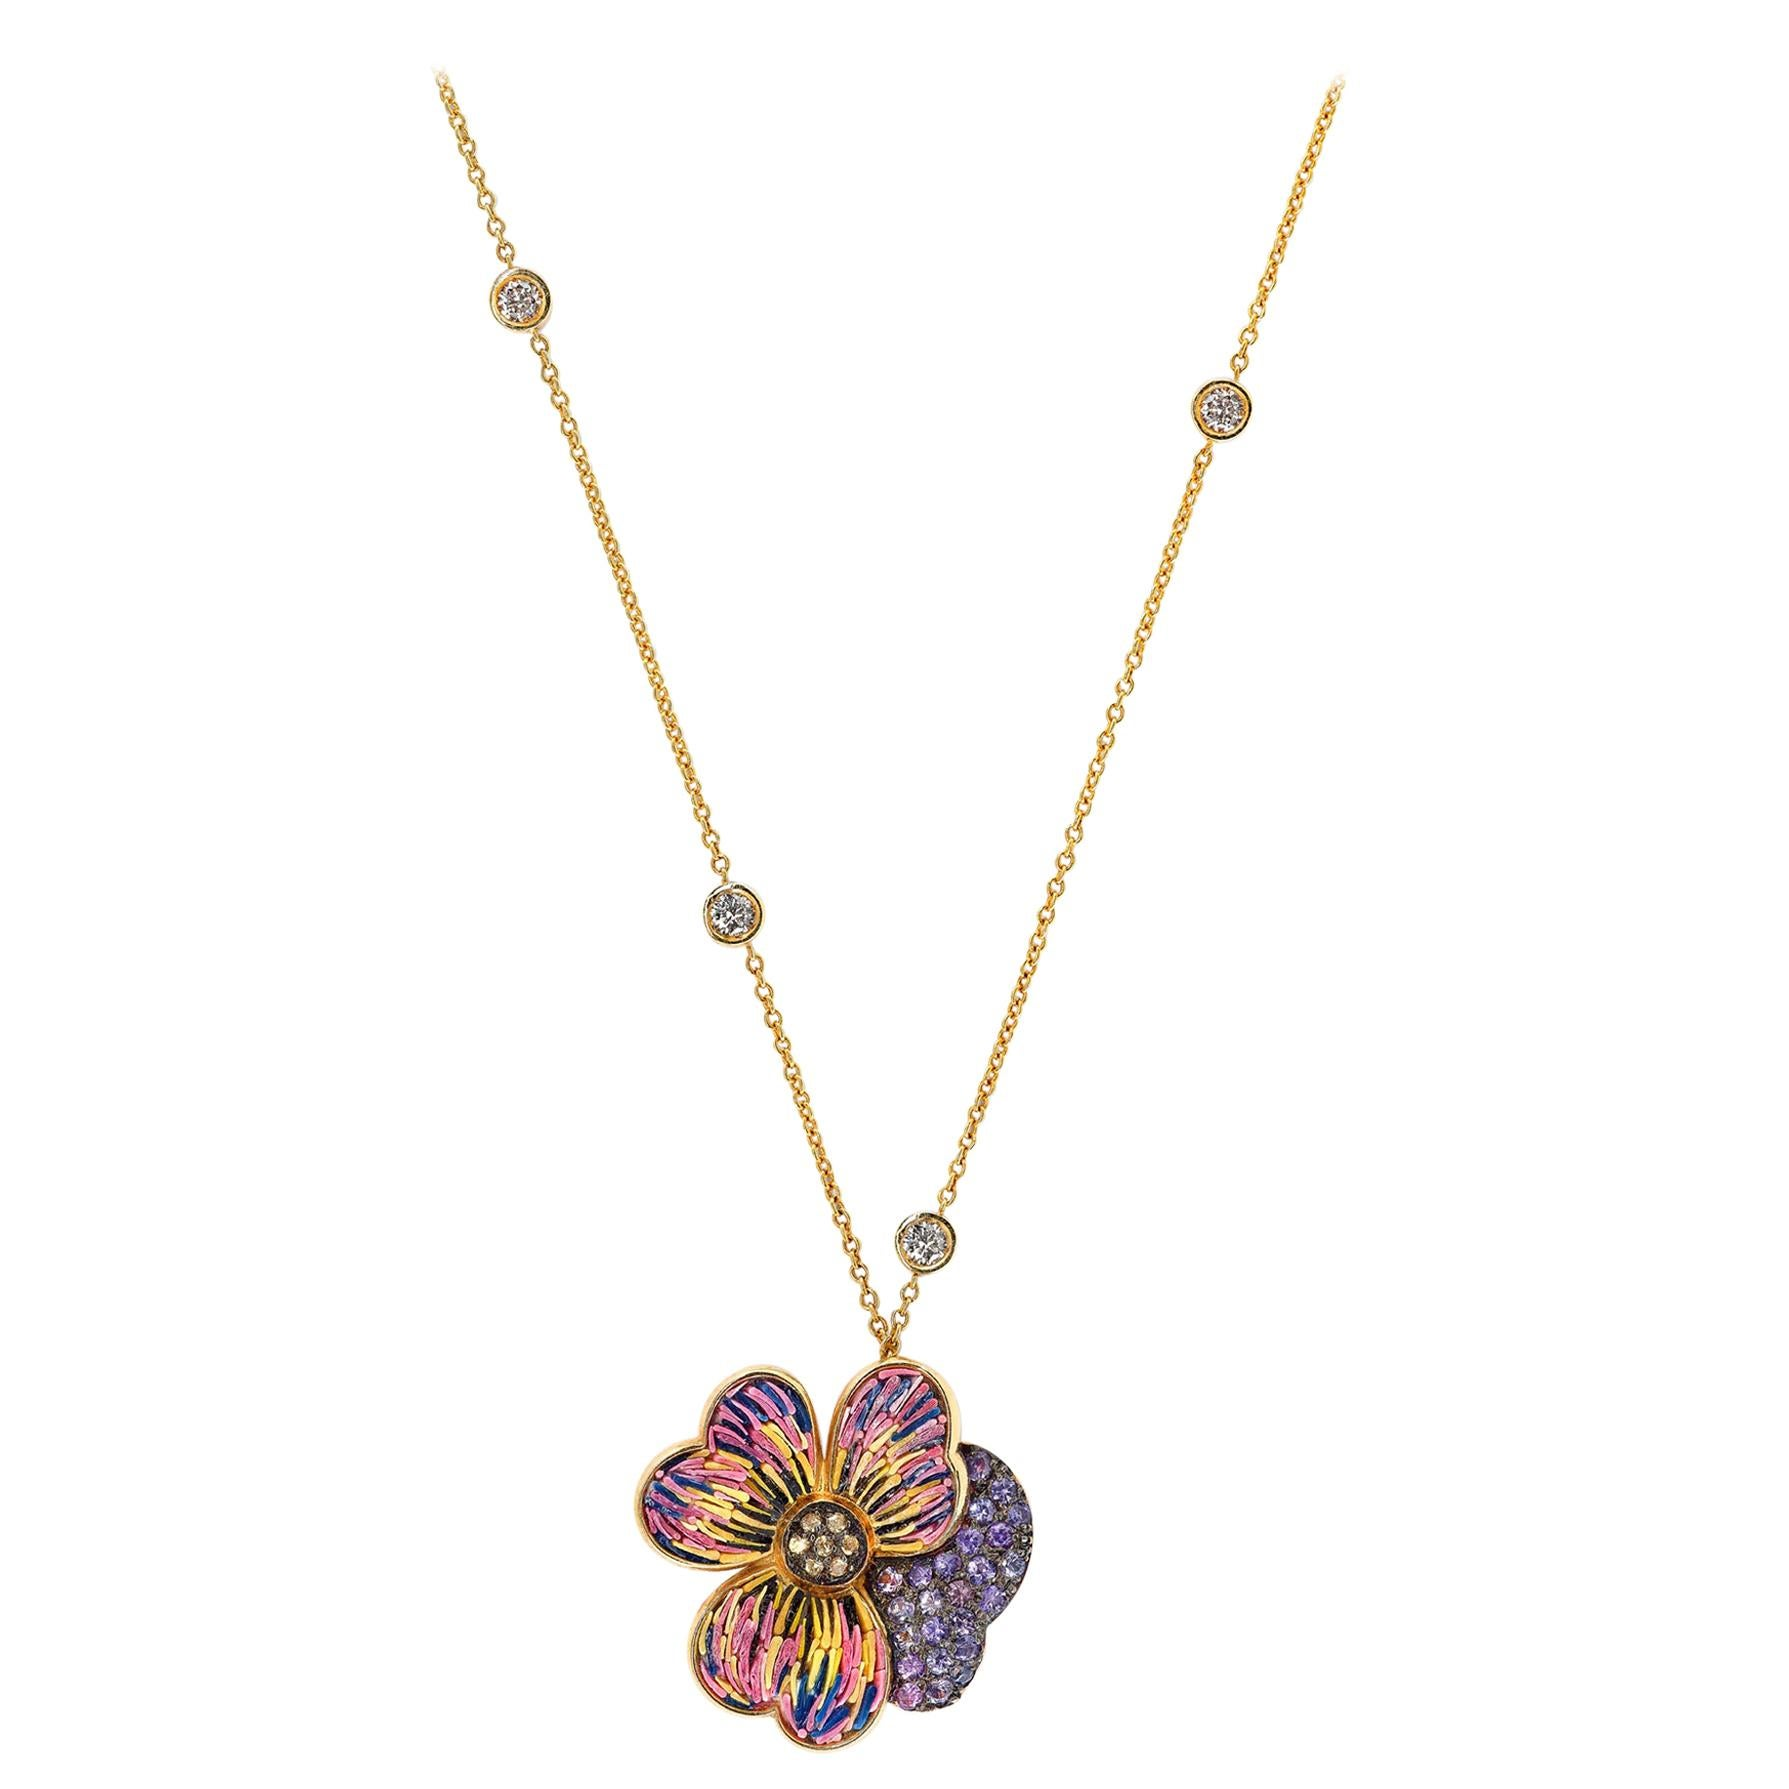 Stylish Necklace Yellow Gold White Diamonds Sapphires Hand Decorated MicroMosaic